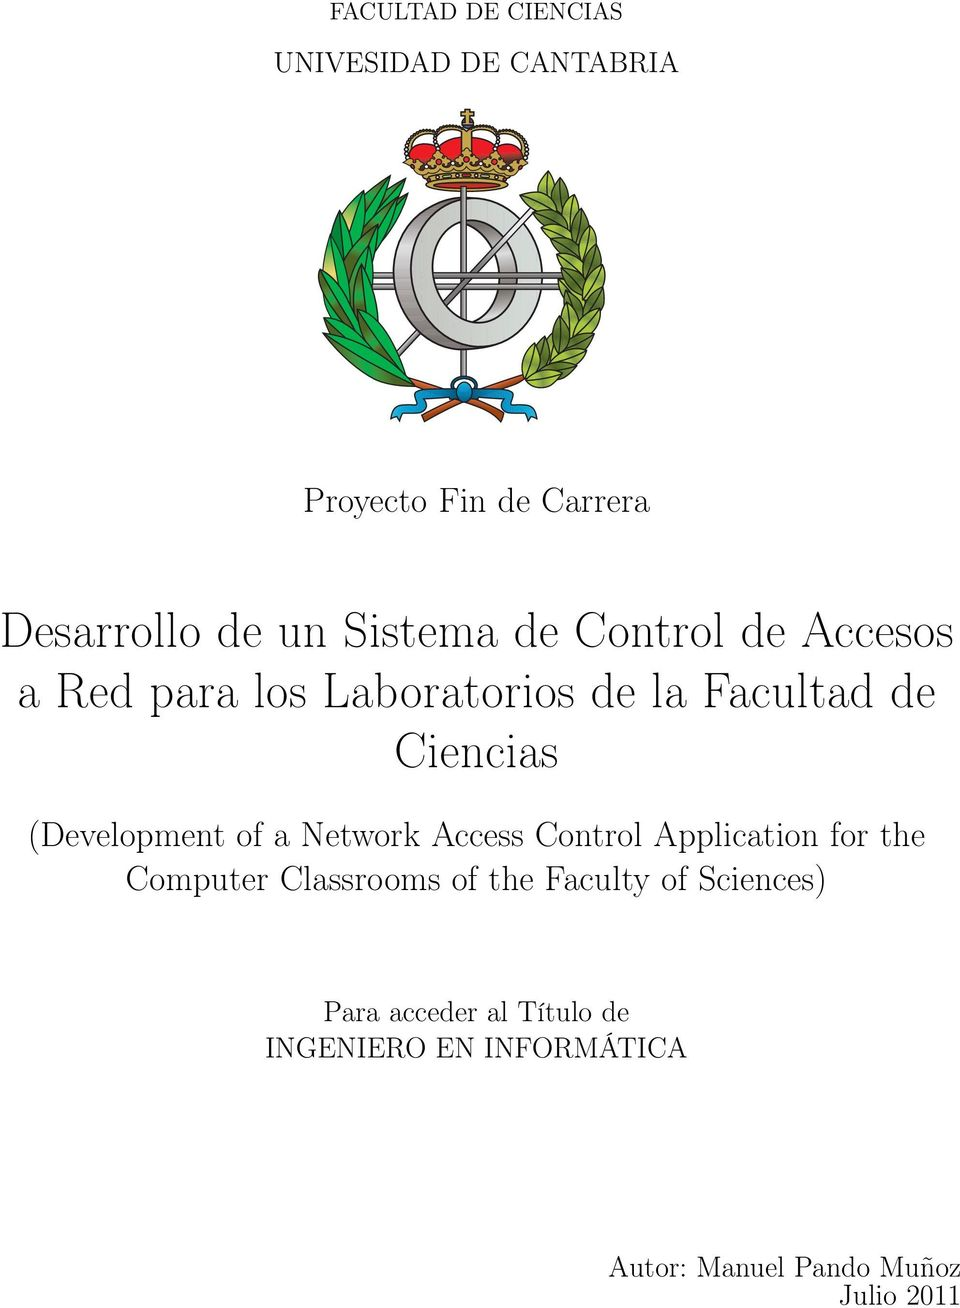 (Development of a Network Access Control Application for the Computer Classrooms of the